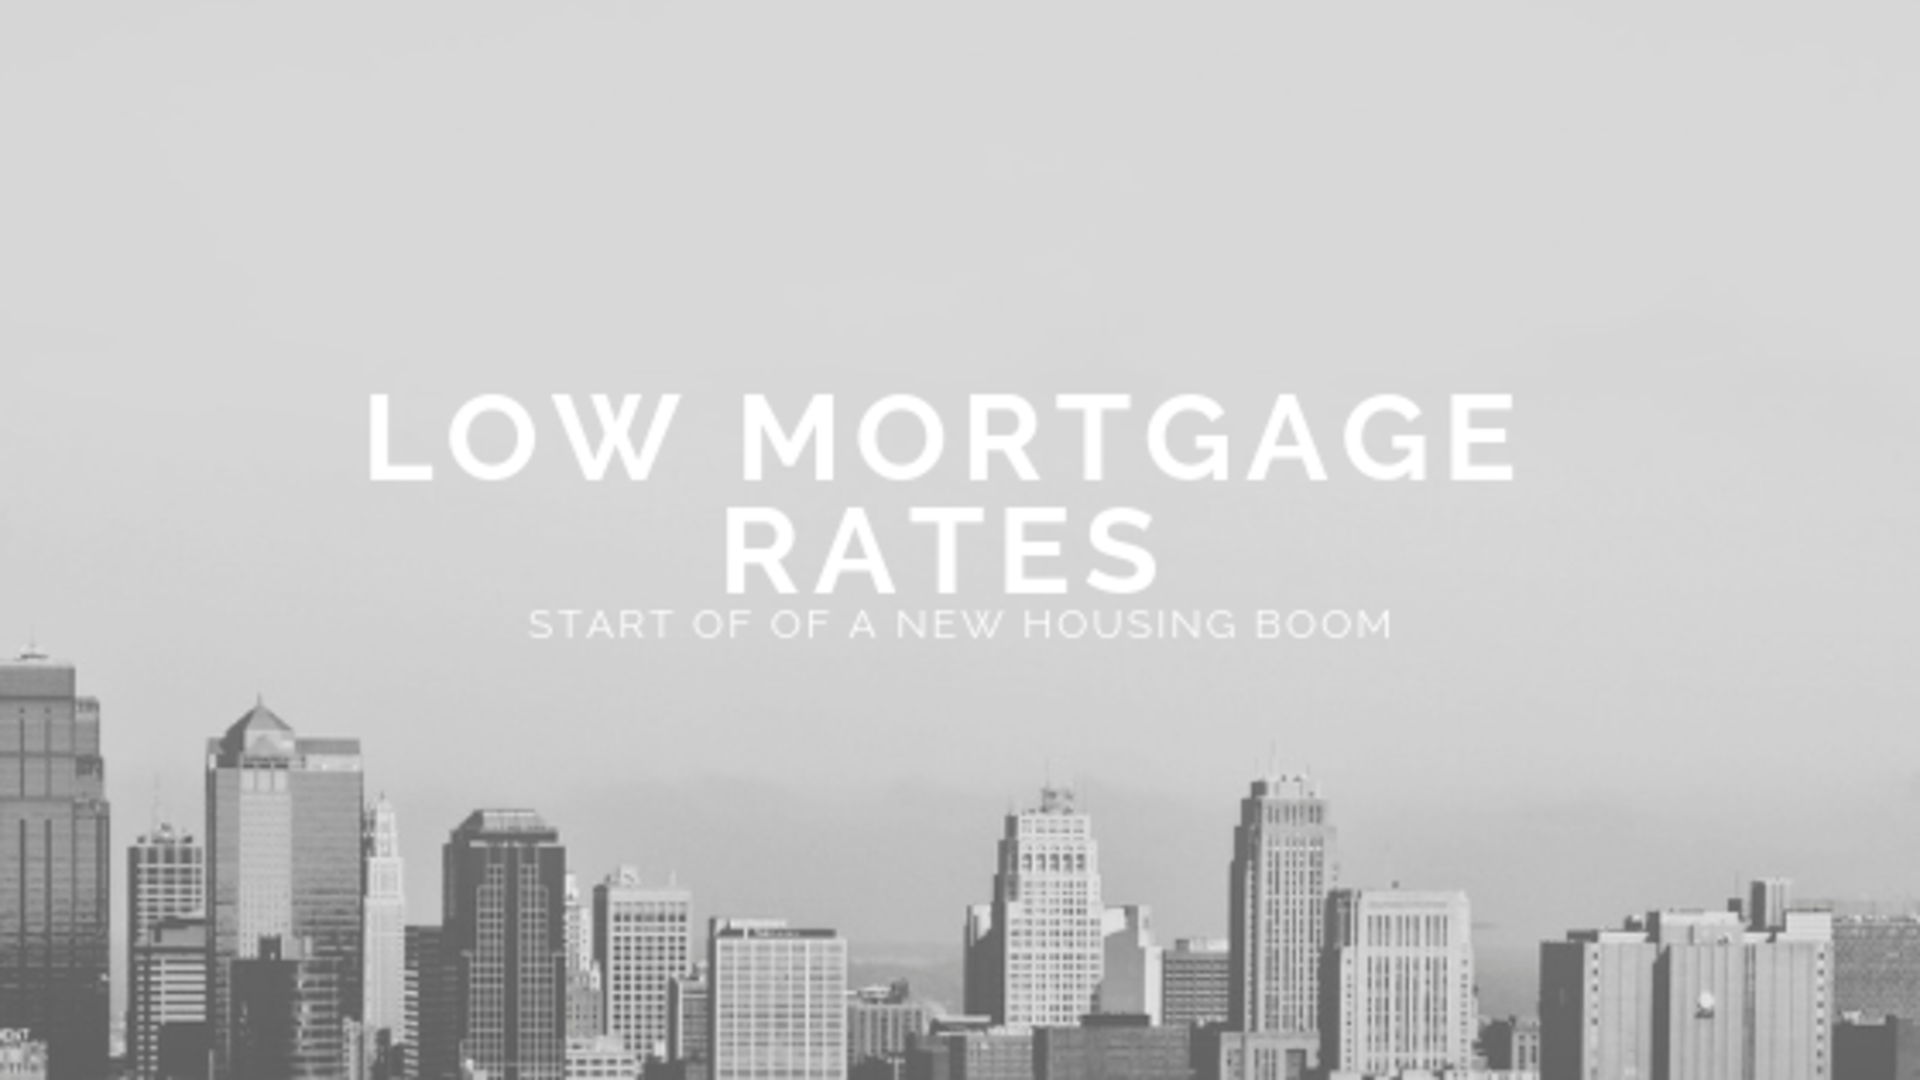 Low Mortgage Rates Gets Americans Back Into The Housing Market